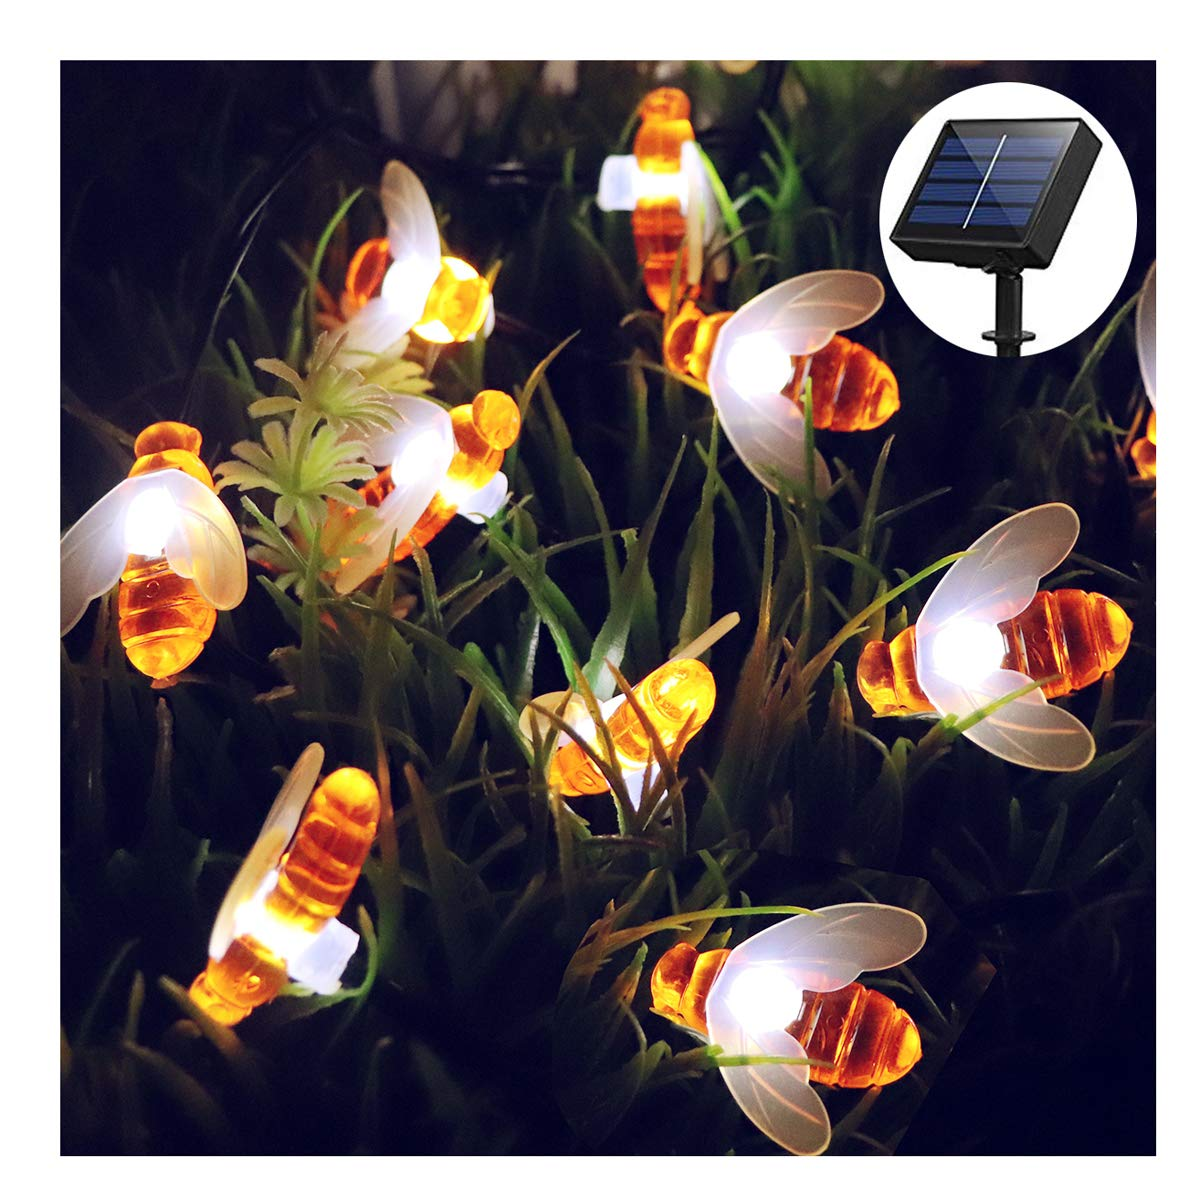 Solar String Light,30 LEDs Outdoor LED Solar Powered Fairy String Lights Waterproof Solar Decoration Honeybee Lights for Christmas, Garden, Patio,Yard,Walkway,Driveway(Warm White) SUOLANUO